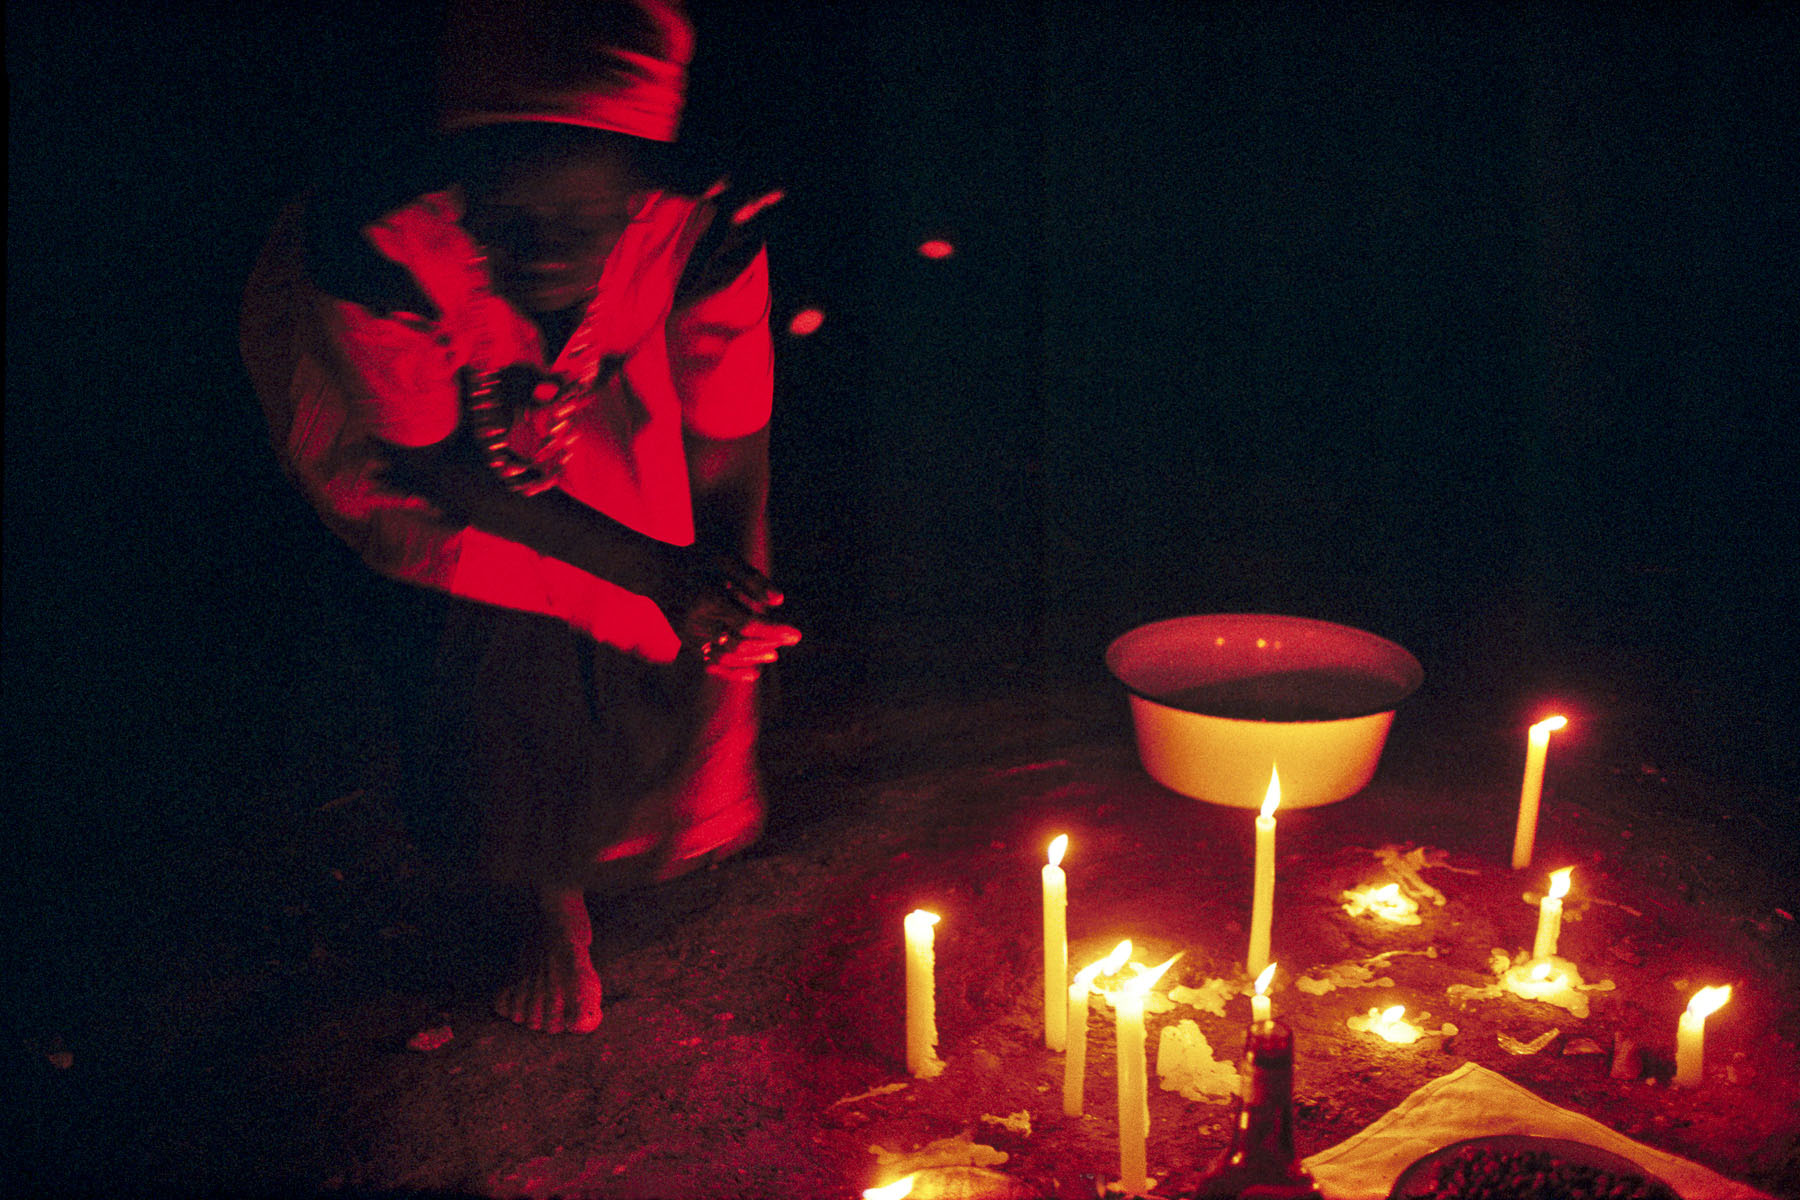 On Twelfth Night a mambo (voodoo priestess) dancing in front of the altar dedicated to the loas (spirits) protectors of the community in January 1997